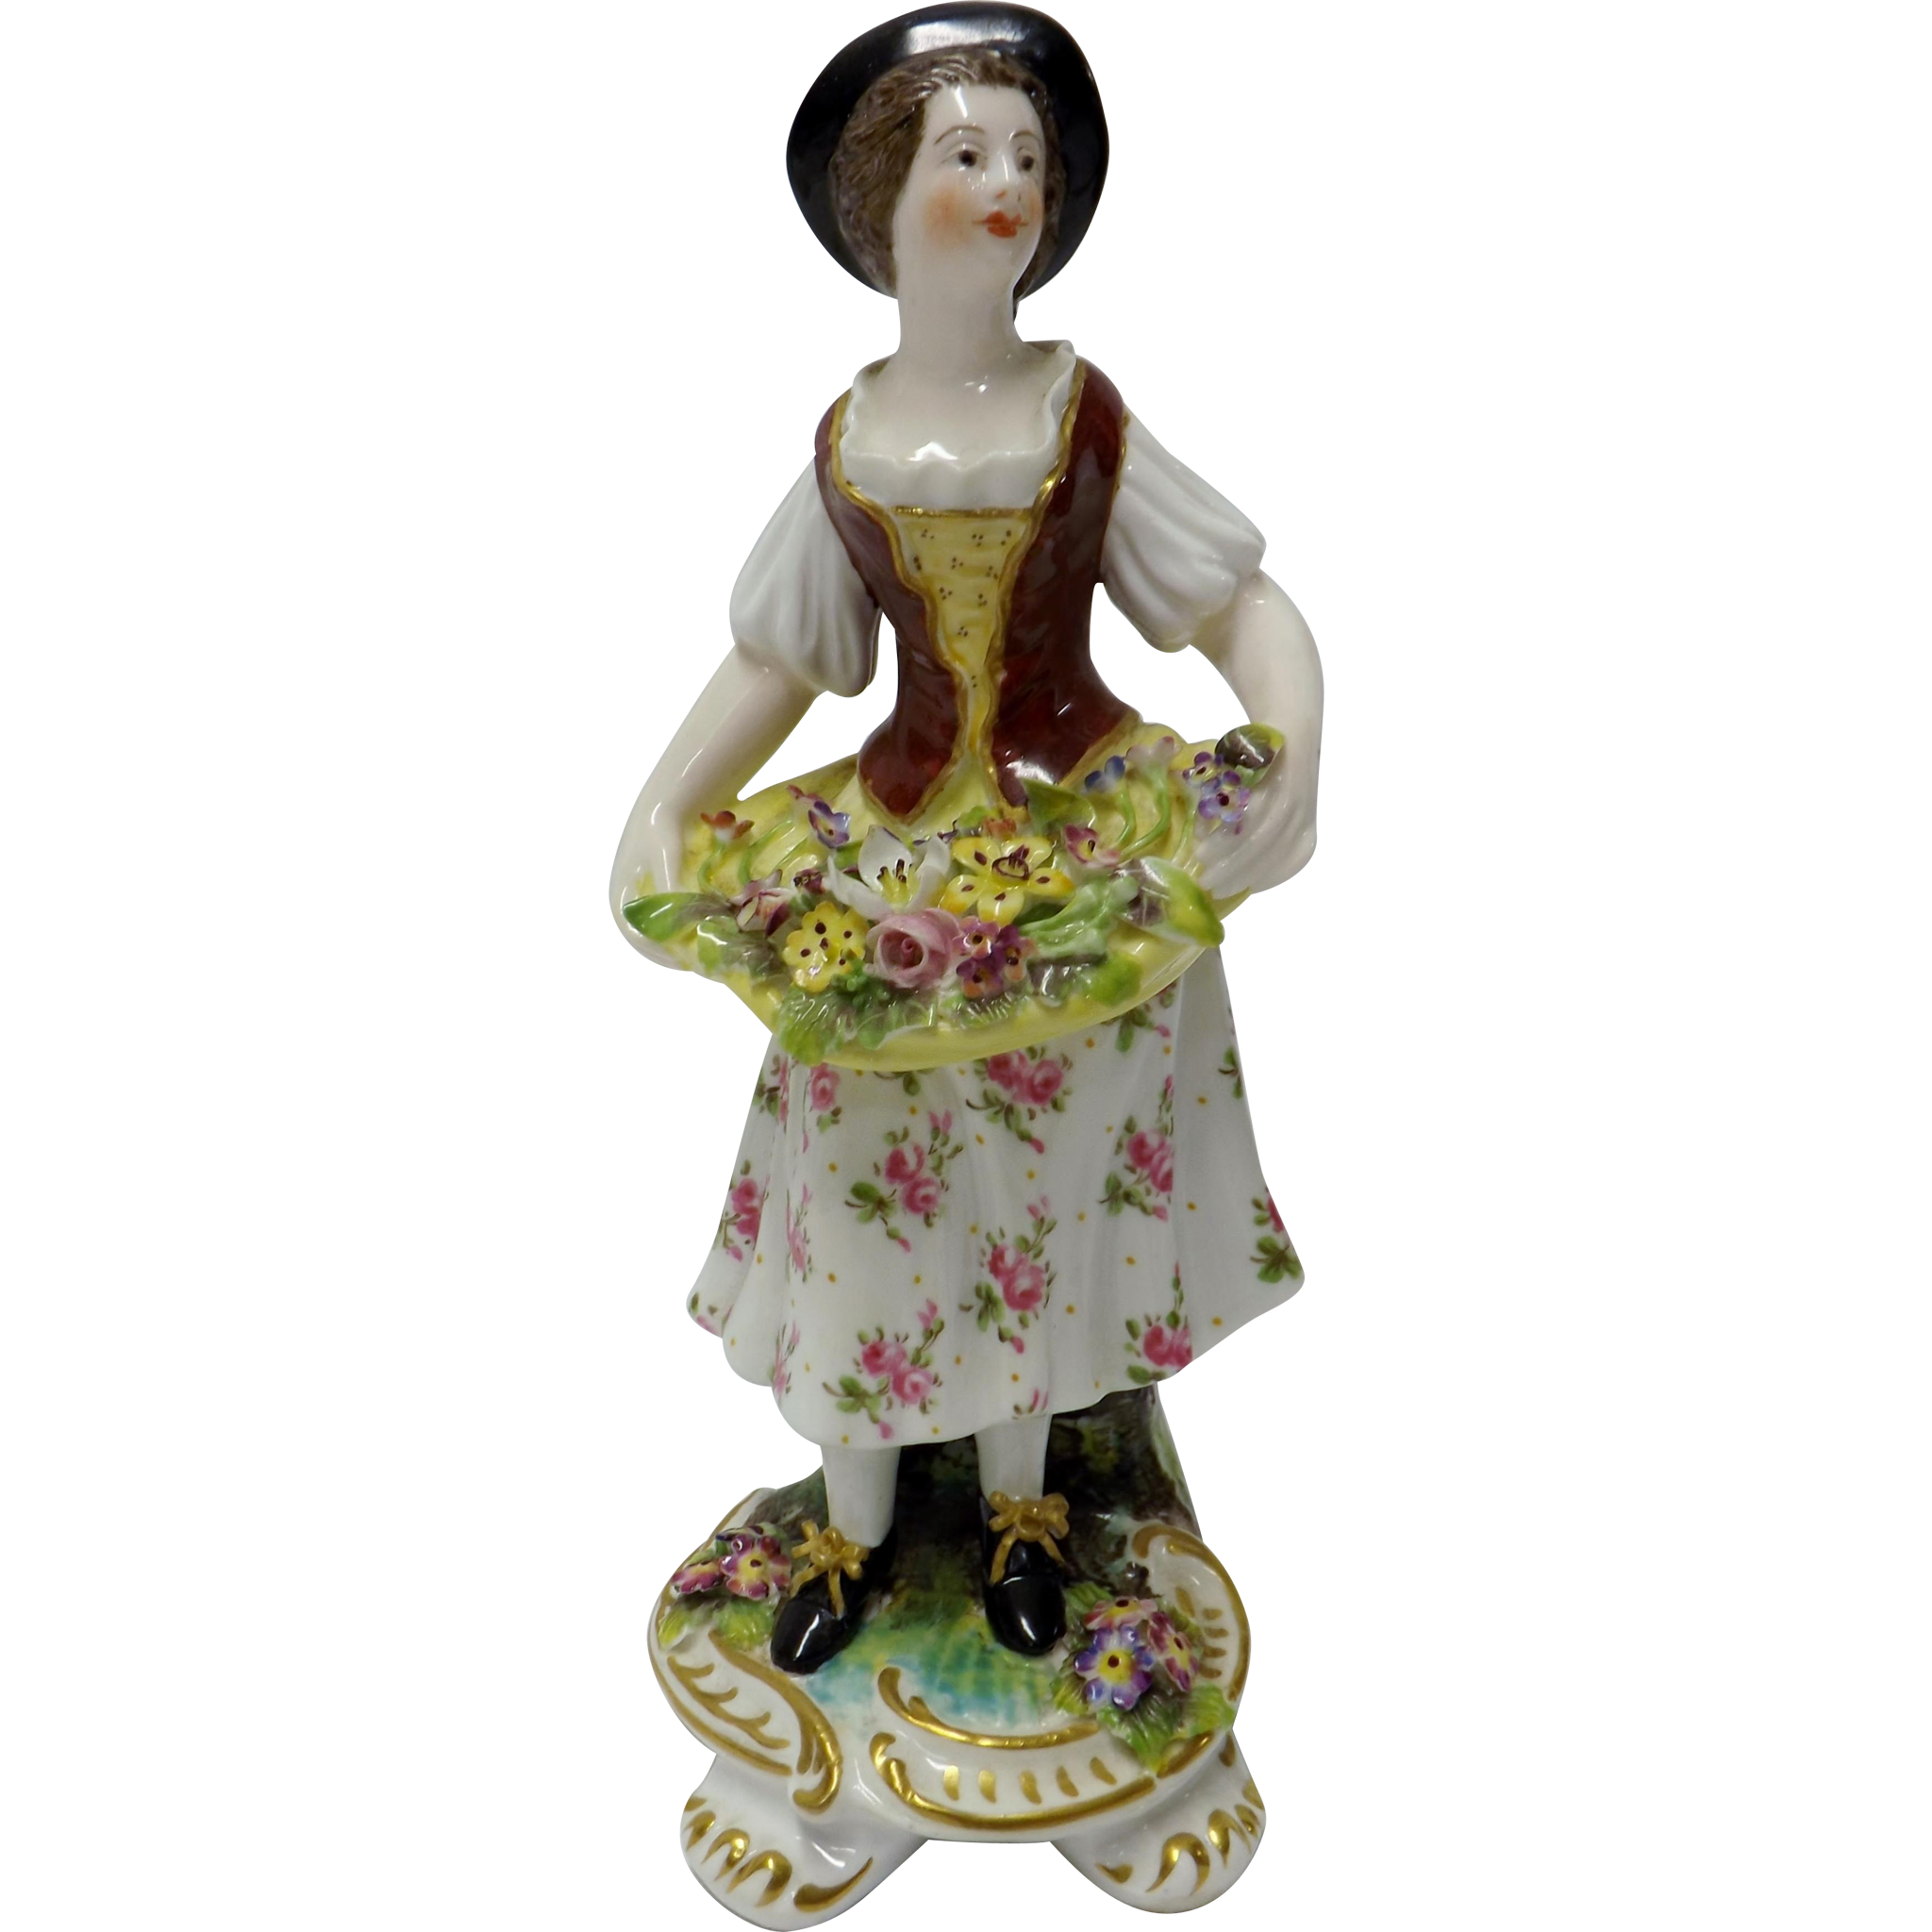 Royal Crown Derby Figurine - Signed H.S. Hancock